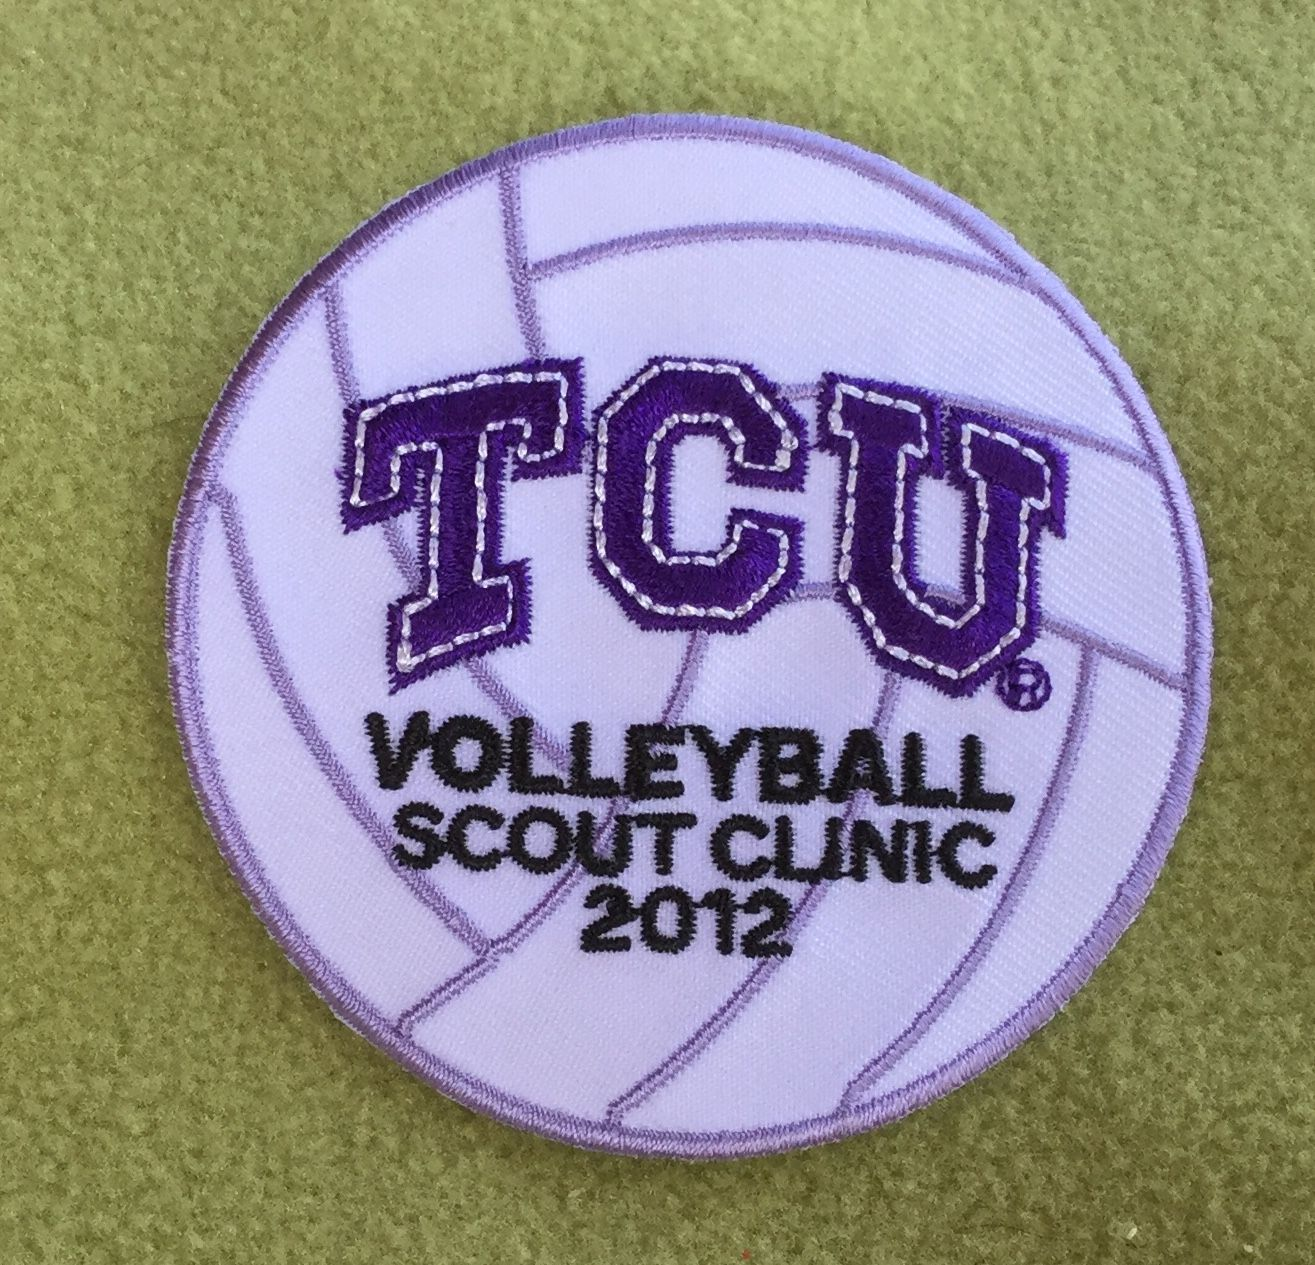 Girl Scout Texas Oklahoma Plains 100th Anniversary Patch Tcu Volleyball Scout Clinic 2012 Thank You Julie Texas And Oklahoma Girl Scouts Tcu Volleyball